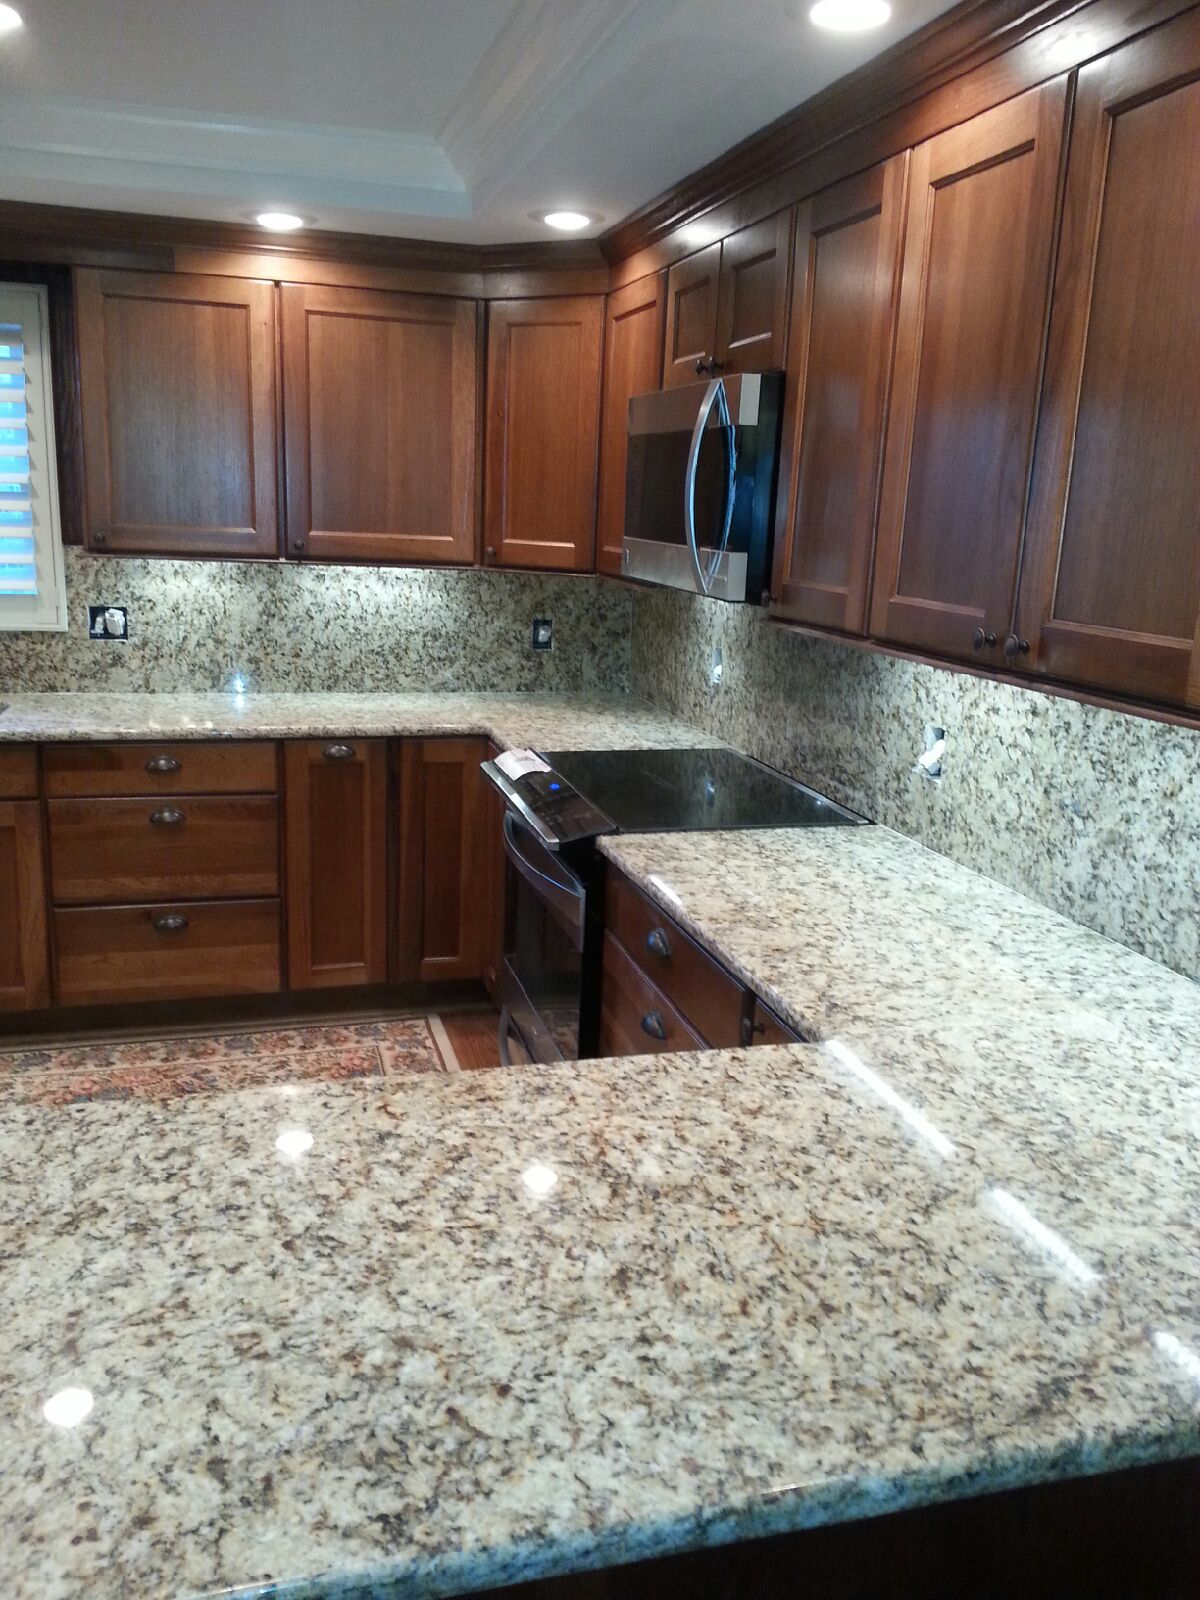 premium slabs a of years hundreds houston countertops see with slab to distributor and s why favorite it this for in products used granite many is countertop dsc easy been have care maintenance